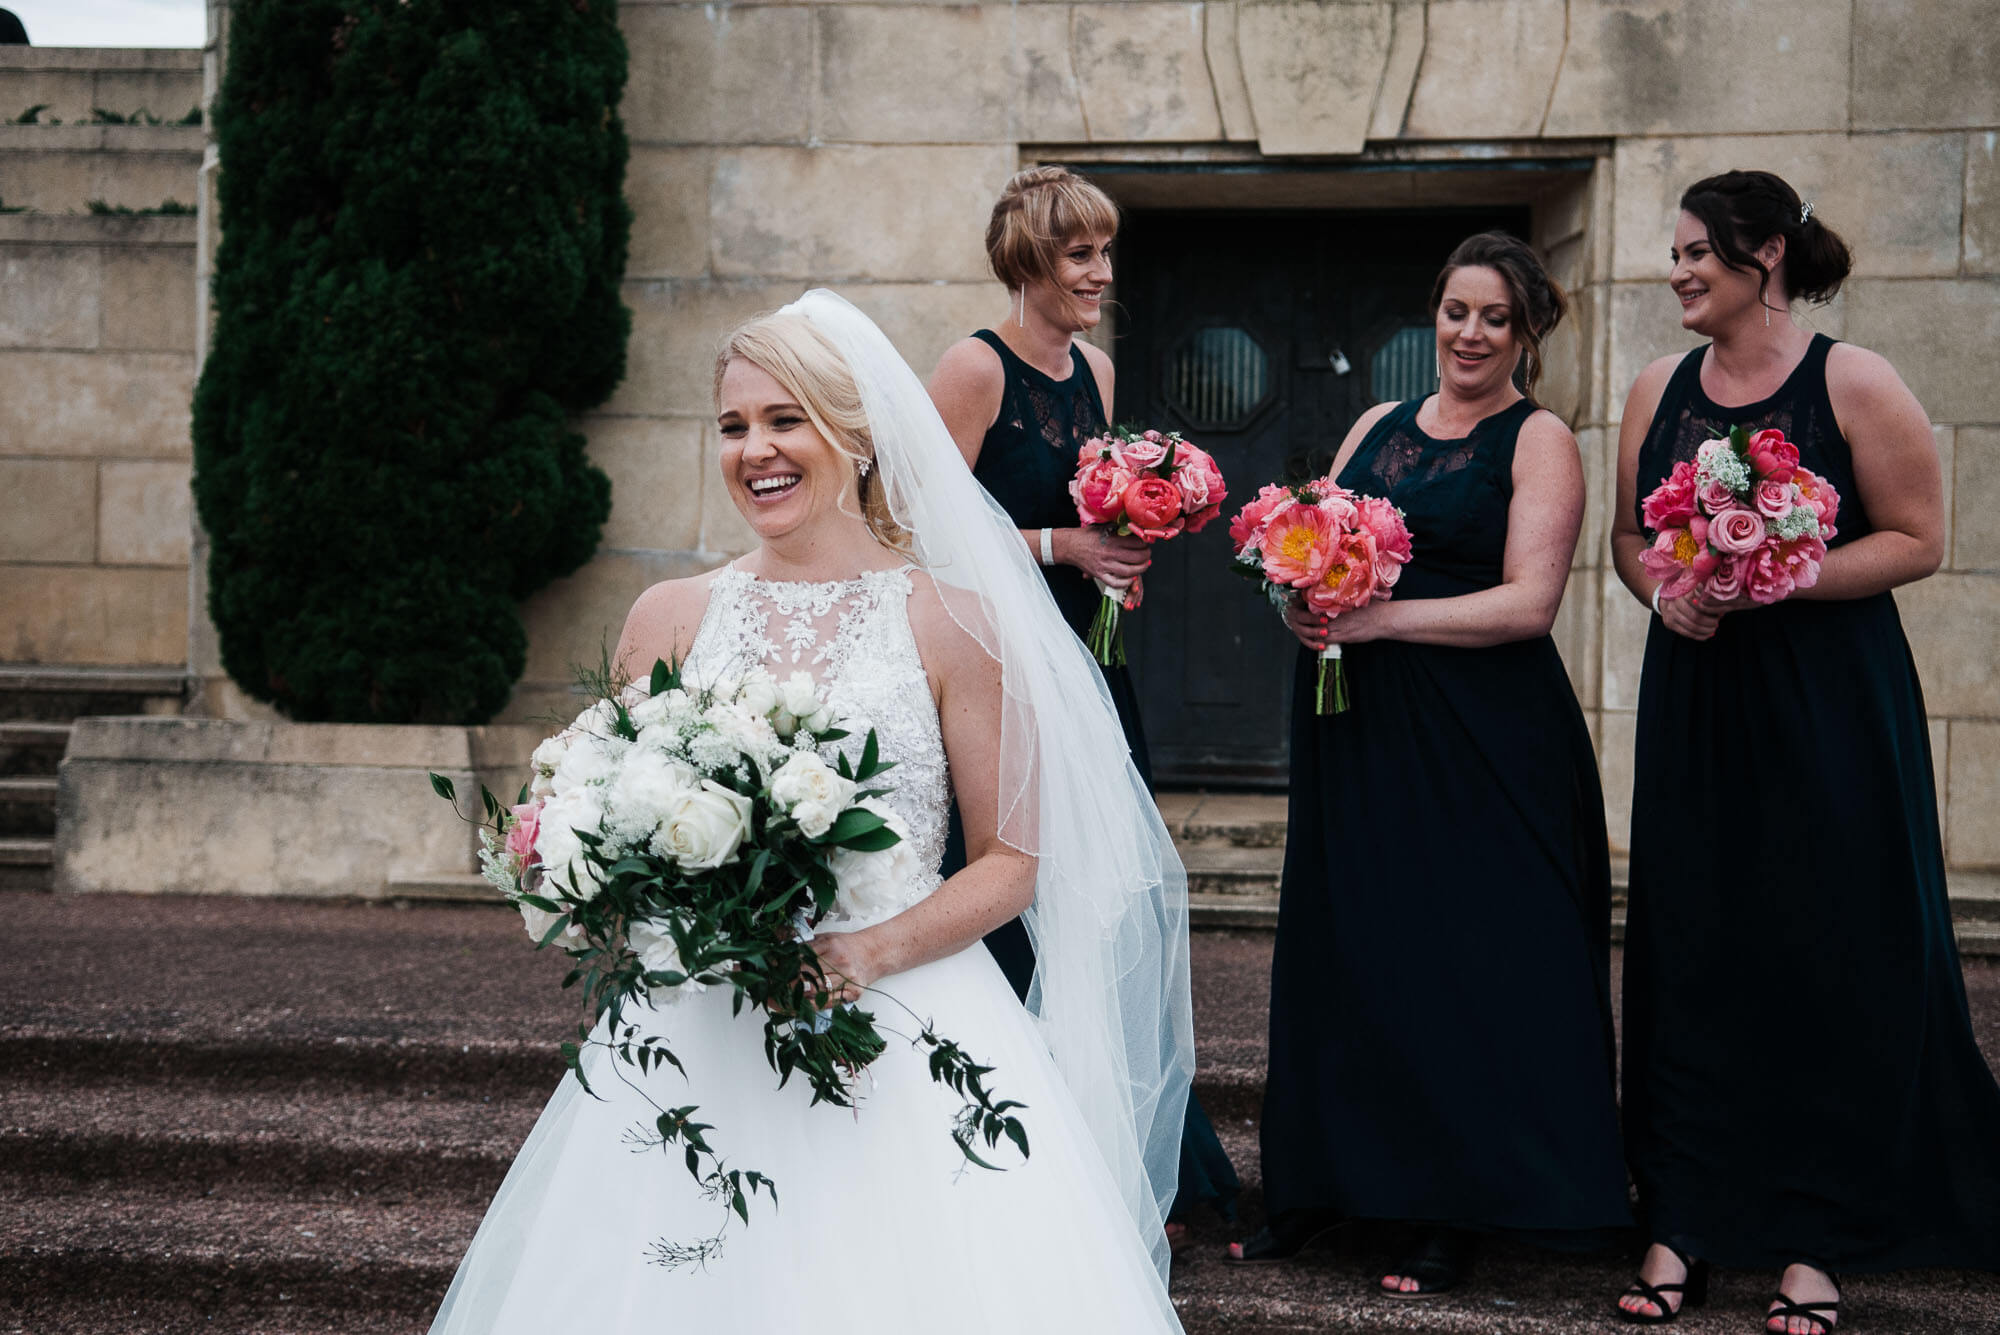 bride-laughing-with-bridesmaids-in-background.jpg